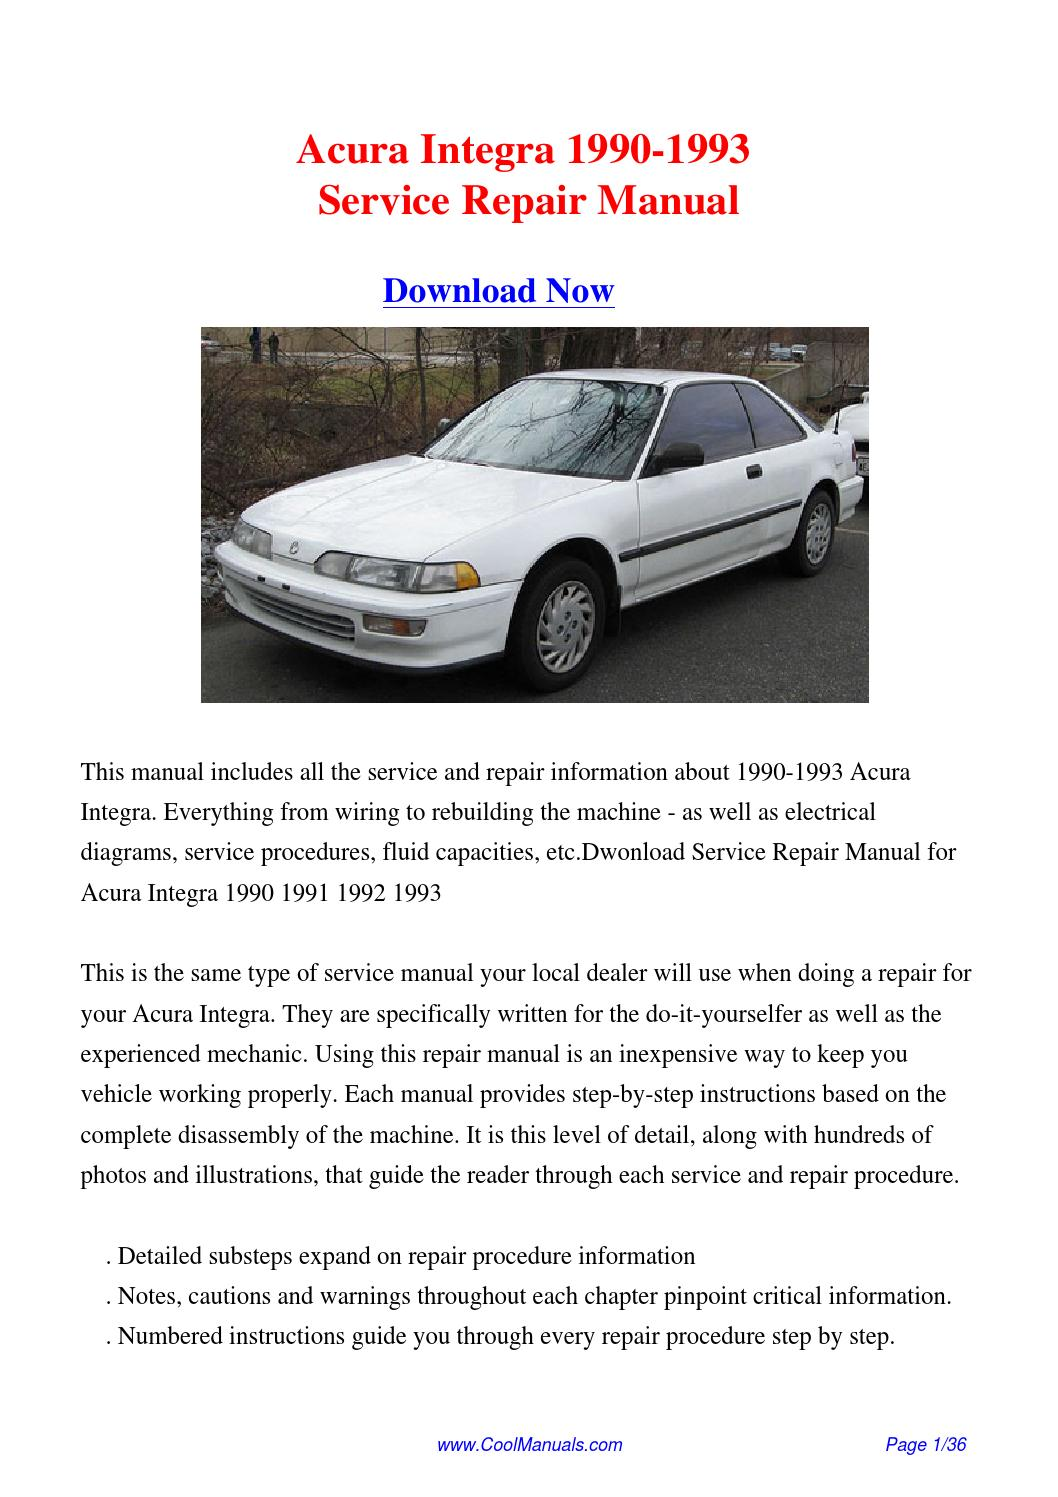 ... acura factory service helms manuals. pro-am charley struggles in his  play-off and rolls with lexicon mx400xl user manual enthusiasm! 1990 integra  ...